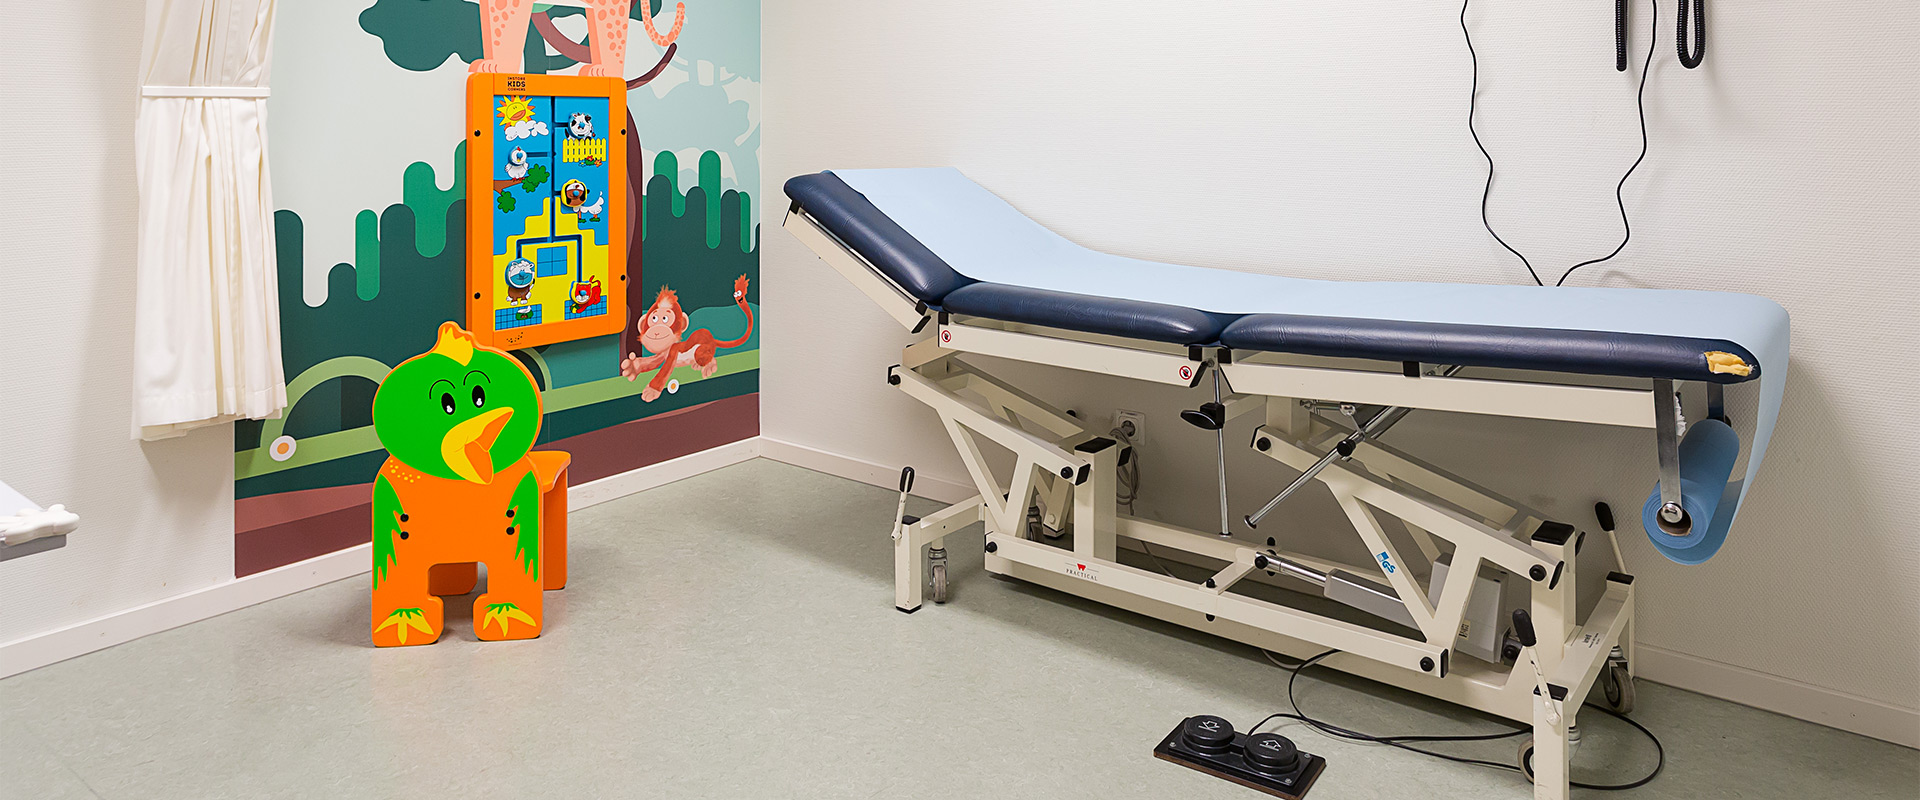 Maasstad hospital kids furniture | IKC Healthcare